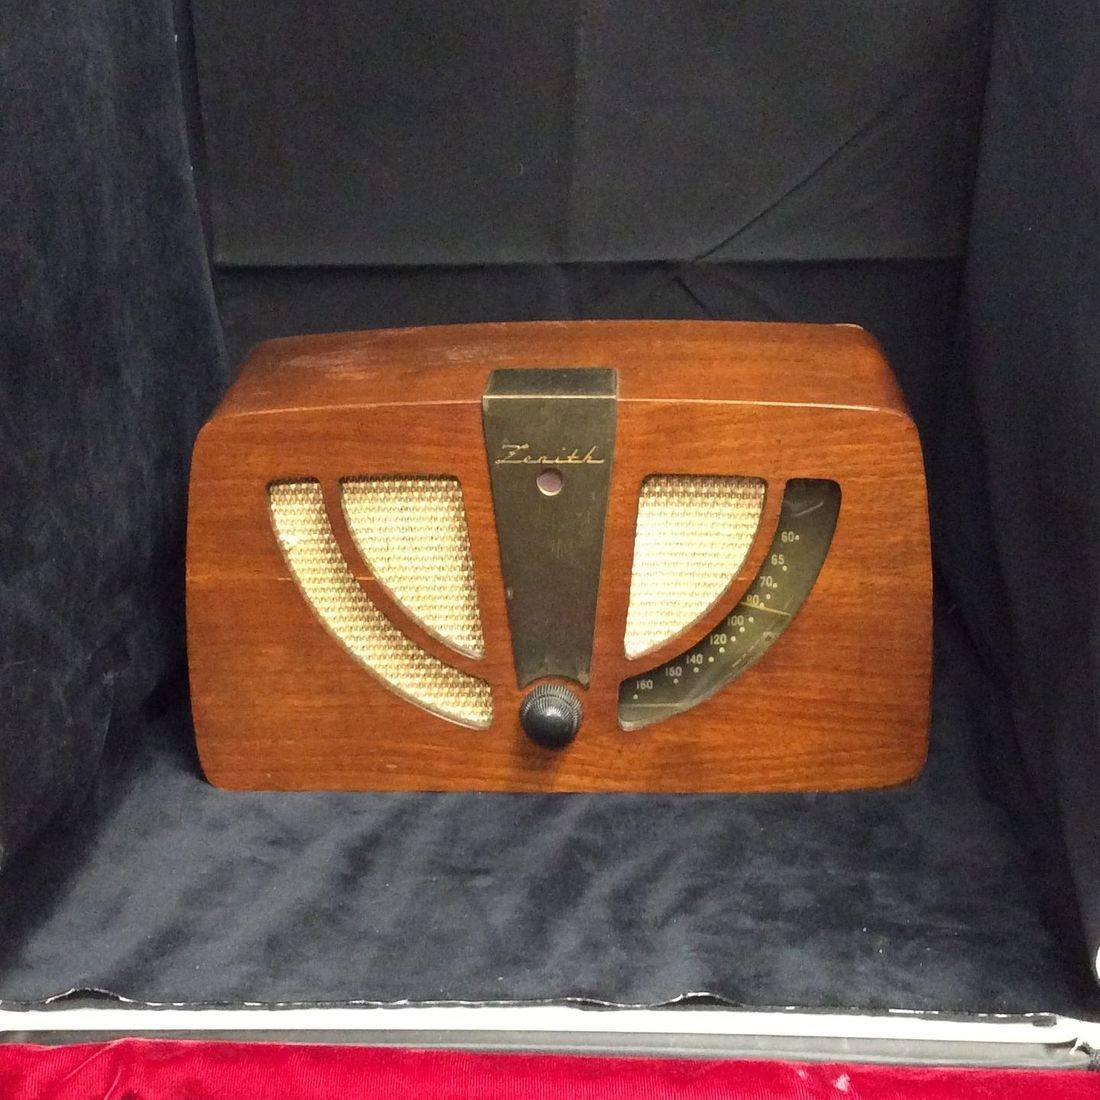 "1946 Zenith Model 6D030 AM Tube Radio, Mahogany Wood Cabinet ""Working condition""   $95.00"